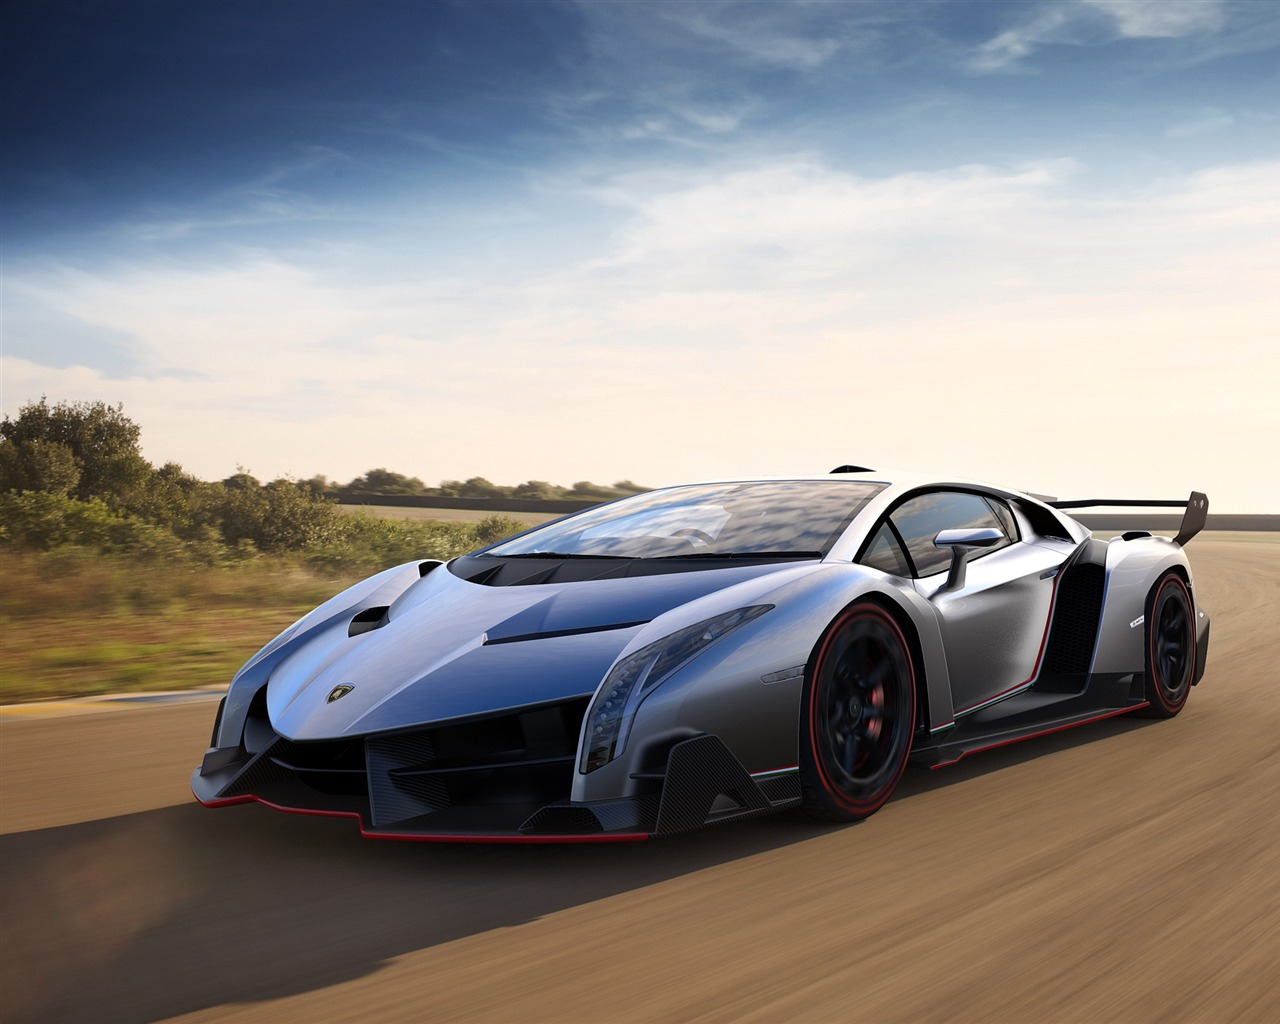 Full Hd Wallpaper For Laptop 兰博基尼veneno 2013汽车高清壁纸预览 10wallpaper Com